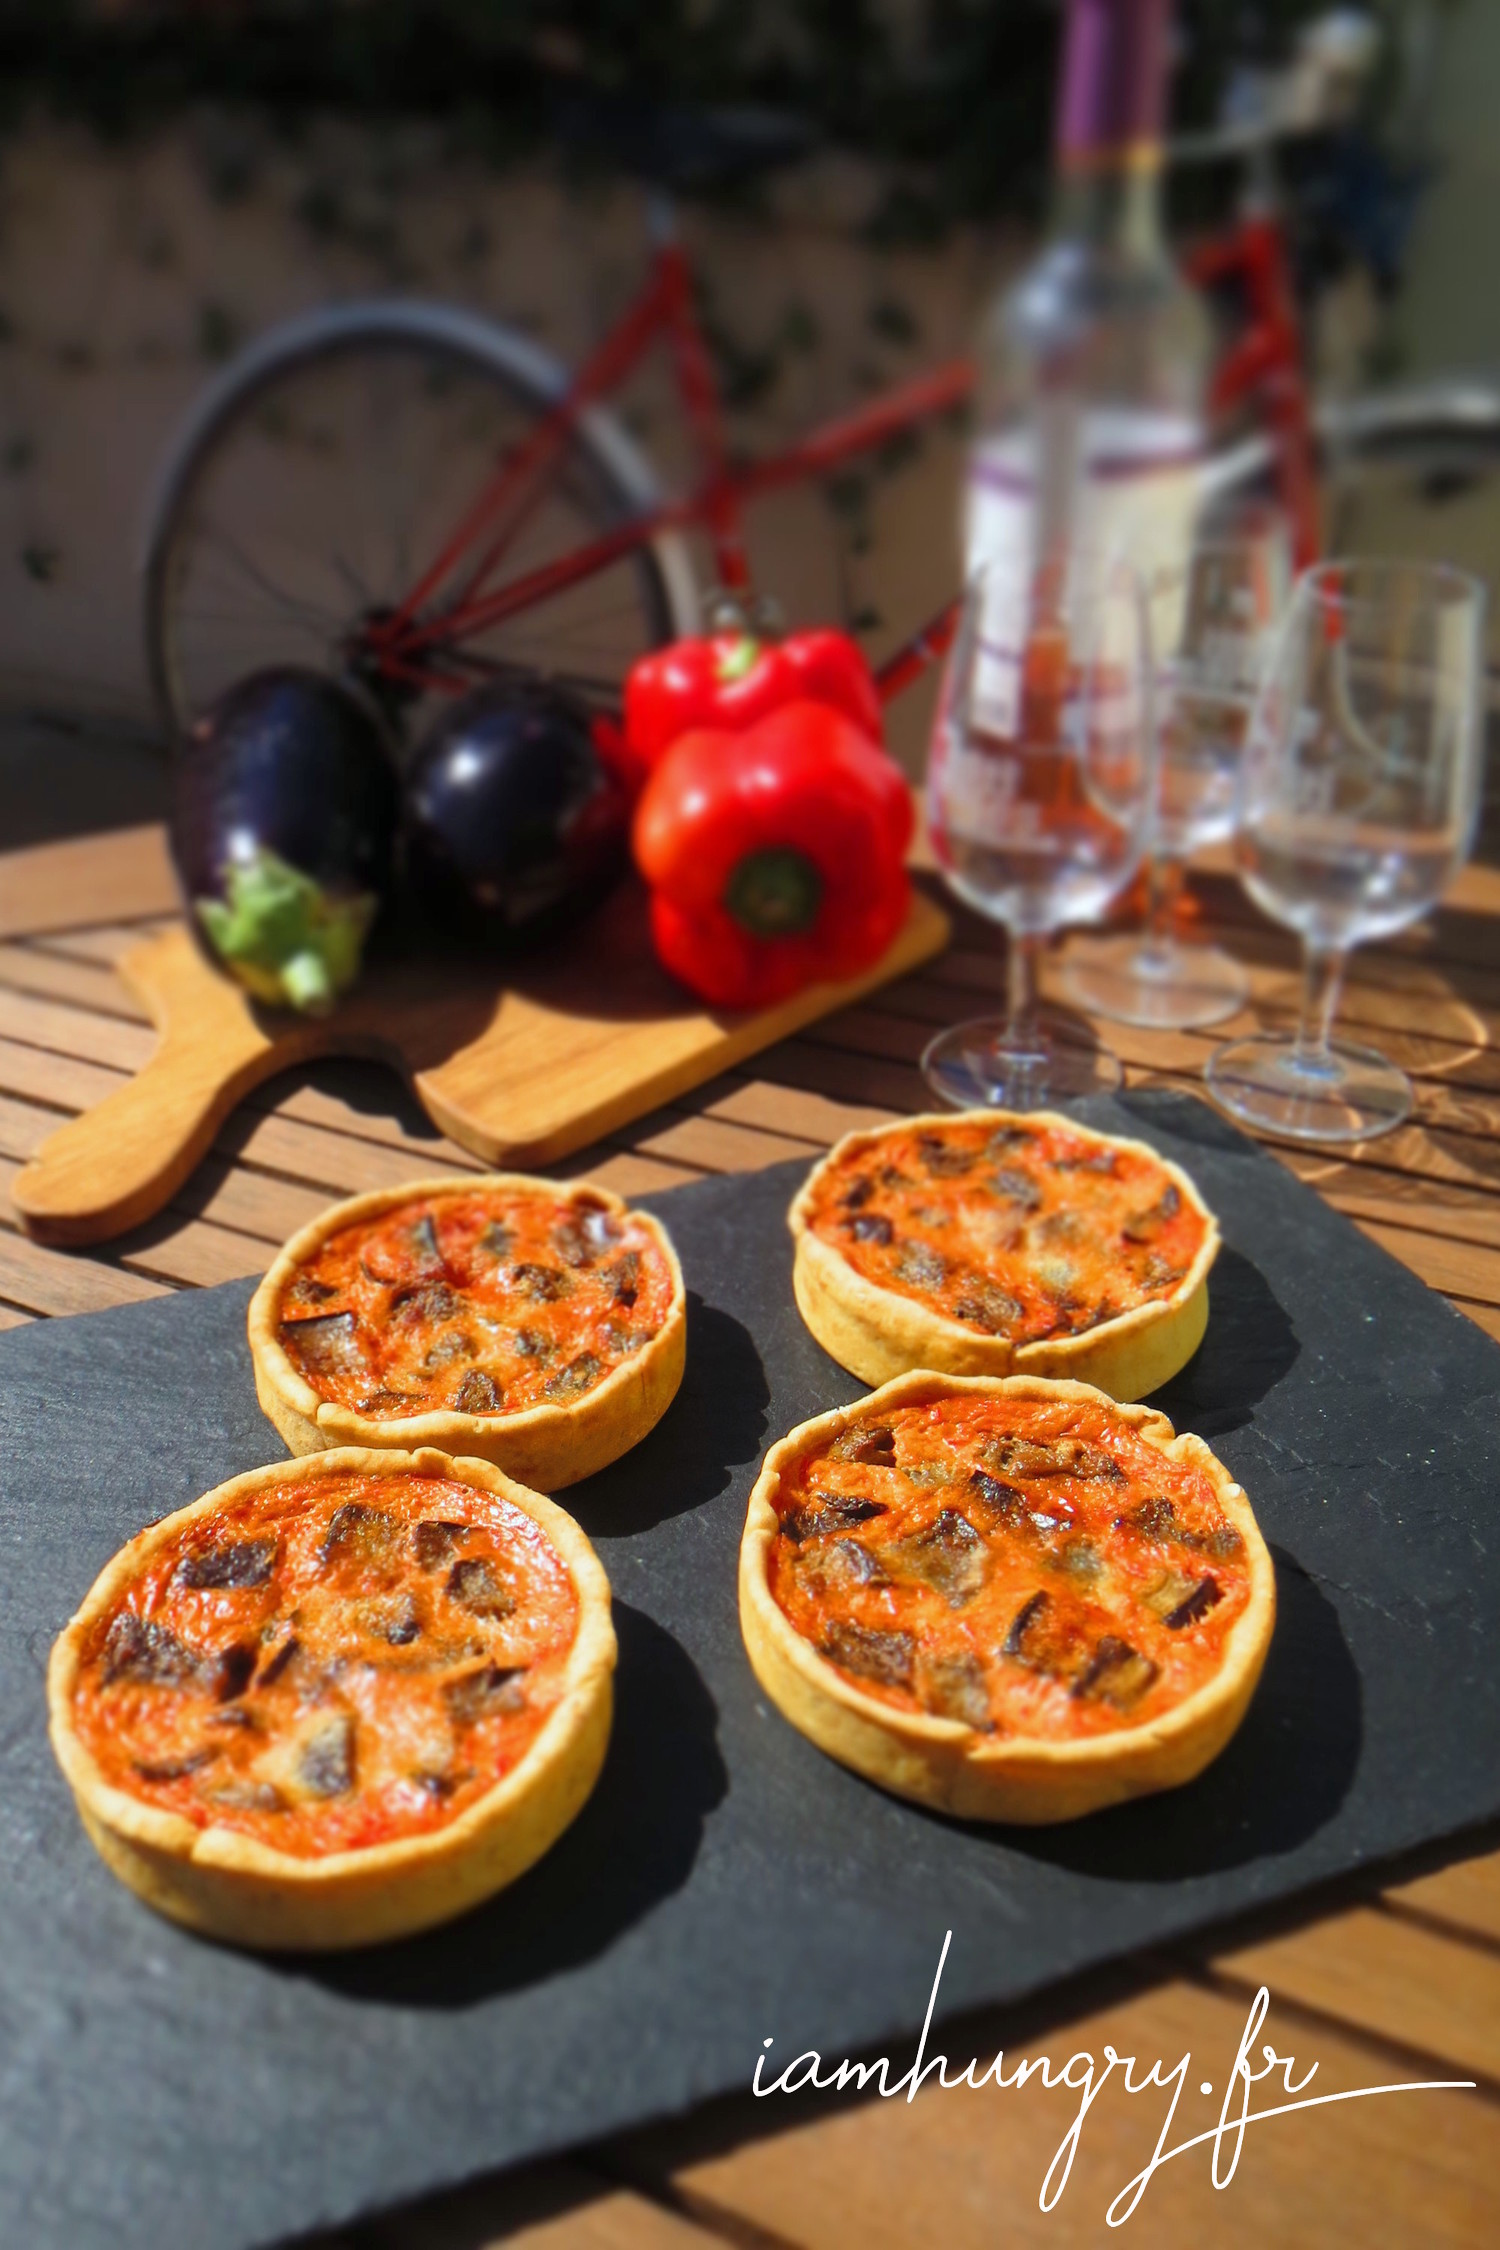 Little redpepper quiches with eggplants